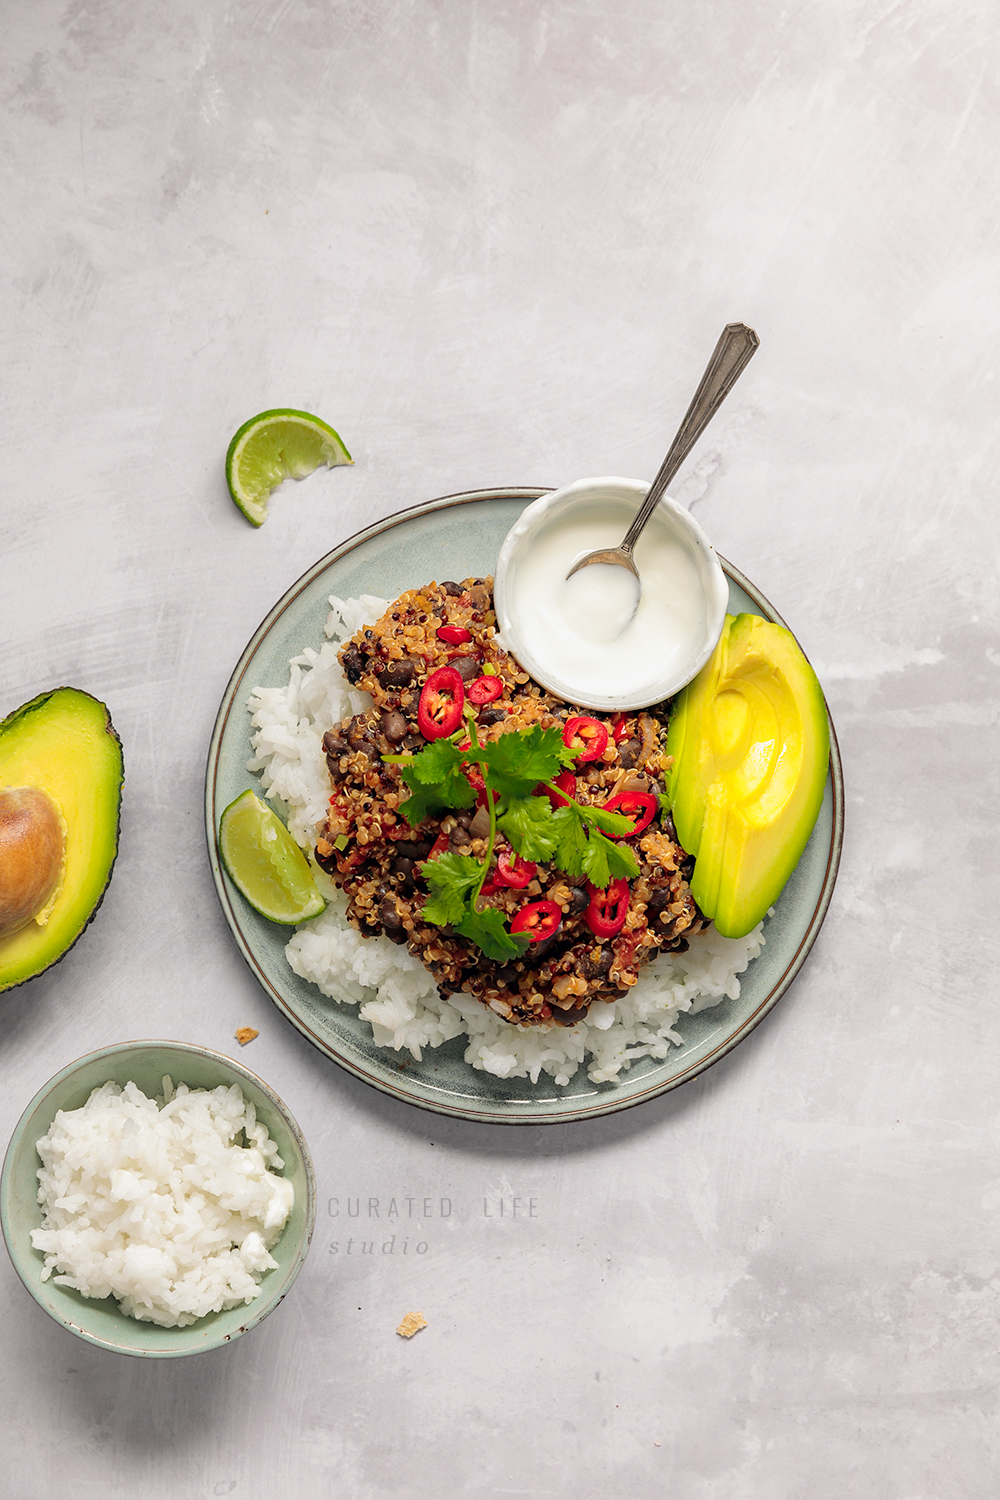 Vegetarian Chilli Con Carne with Black Beans, Quinoa and plenty of veggies! Delicious, simple and perfect for beginners!  #vegetarian #chili #vegan #recipe #black_beans #quinoa #chili_con_carne #vegetable #easy #simple